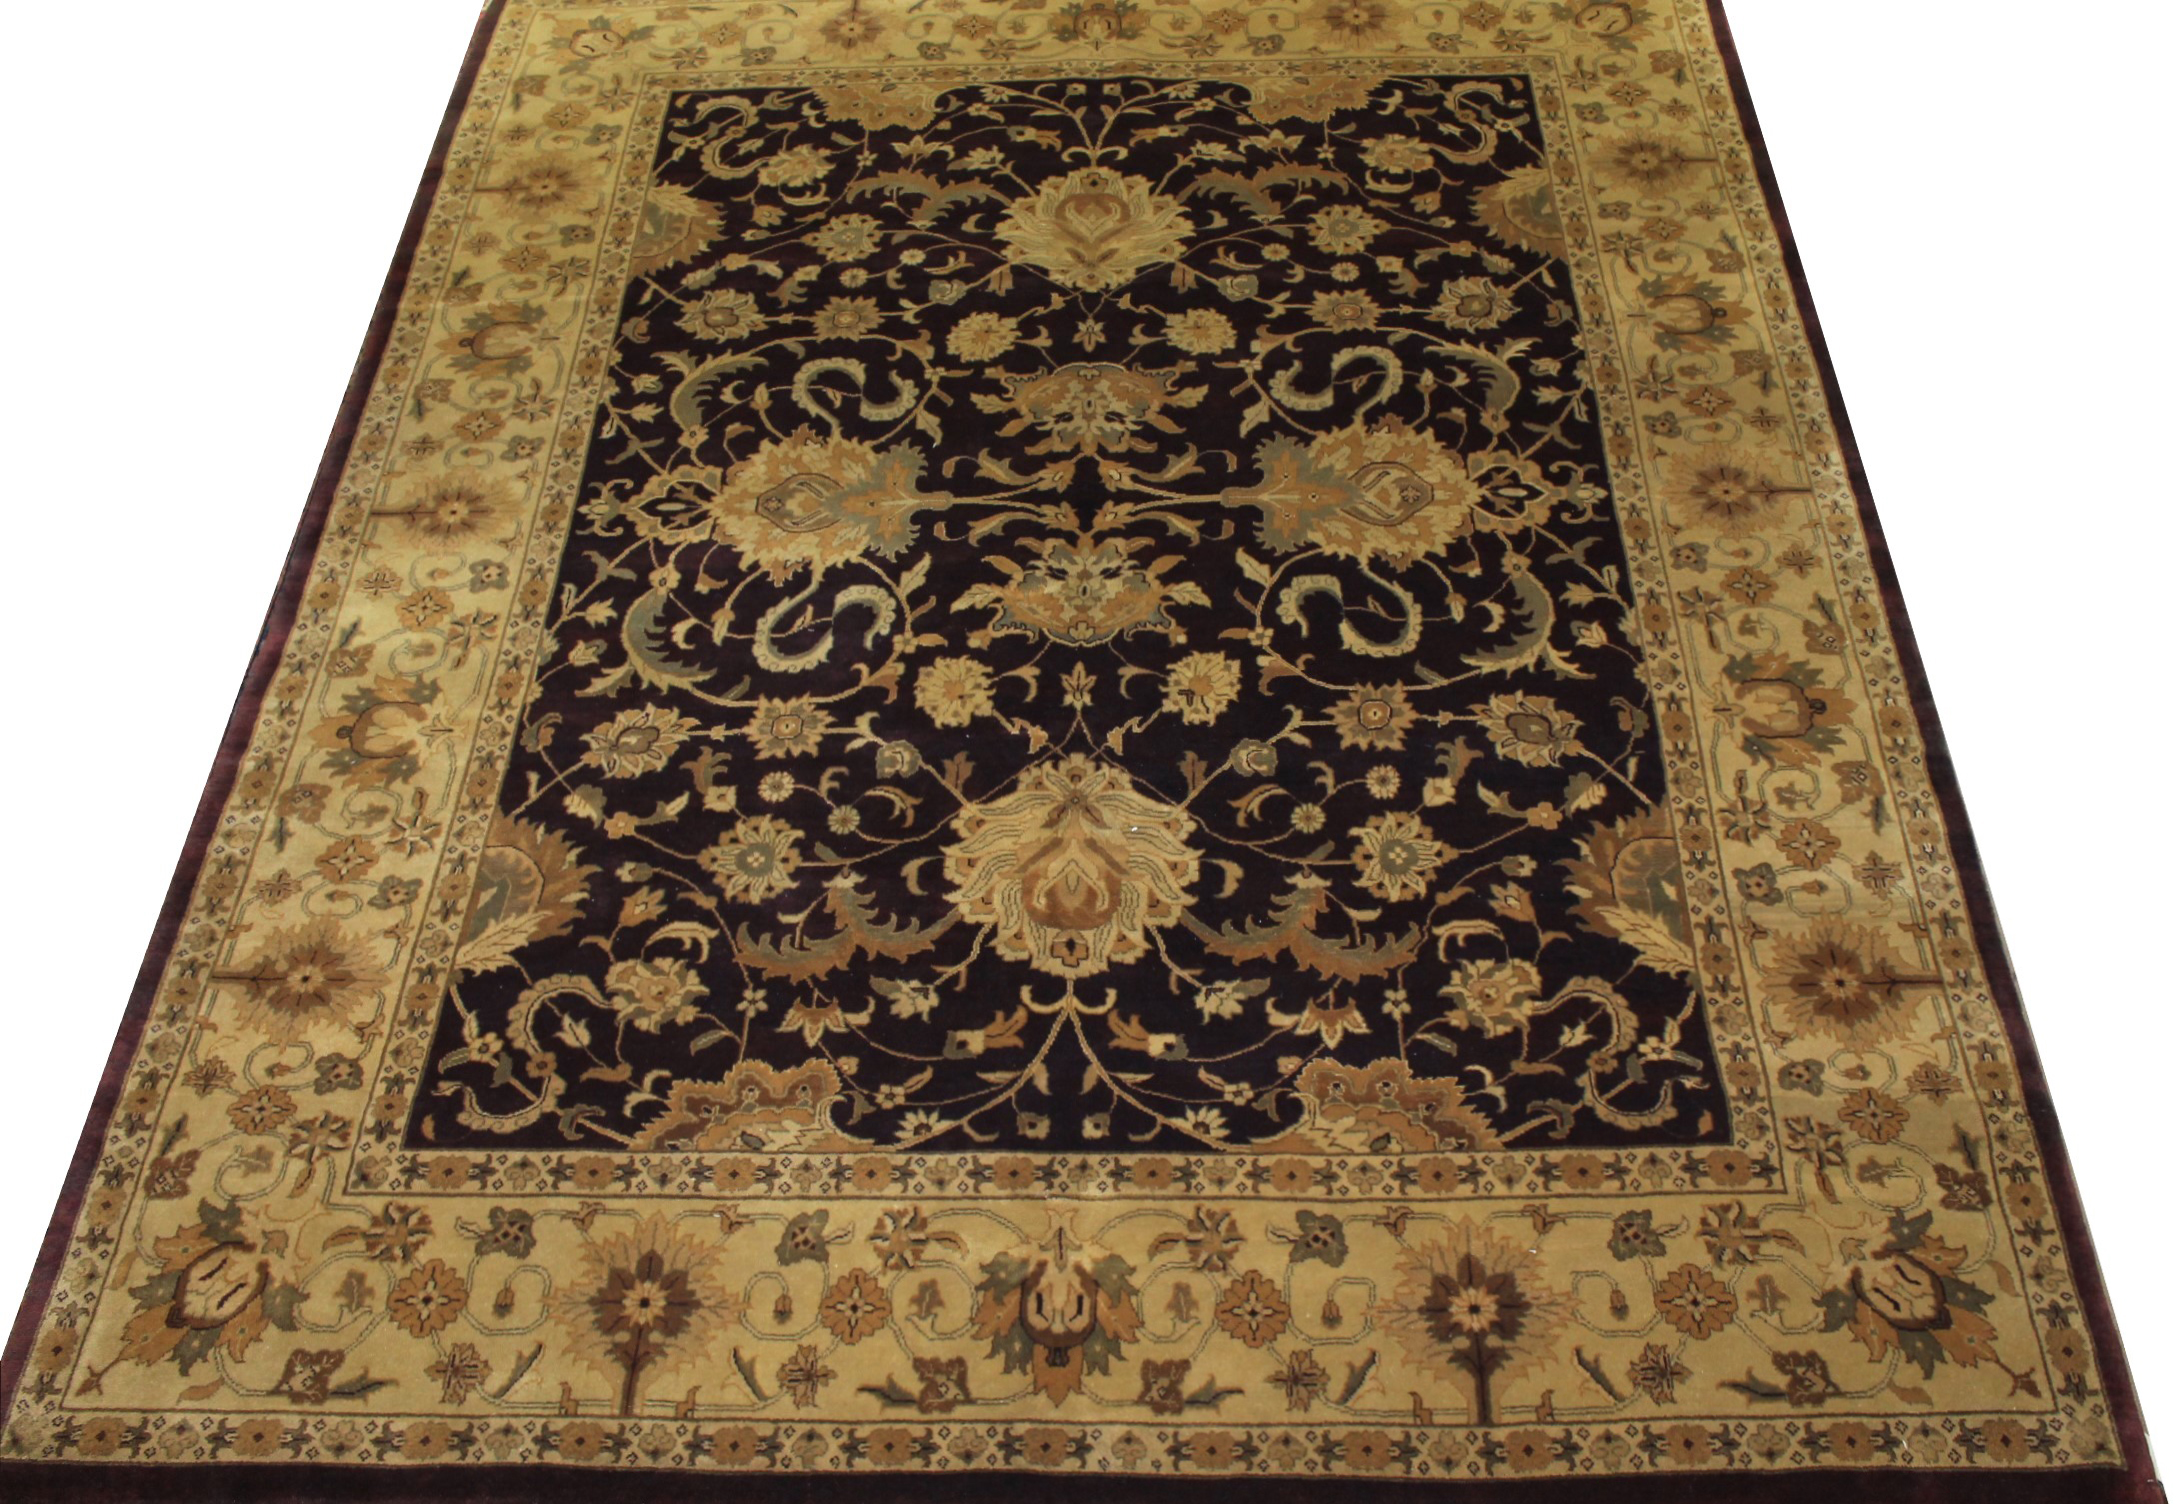 8x10 Traditional Hand Knotted Wool Area Rug - MR0155